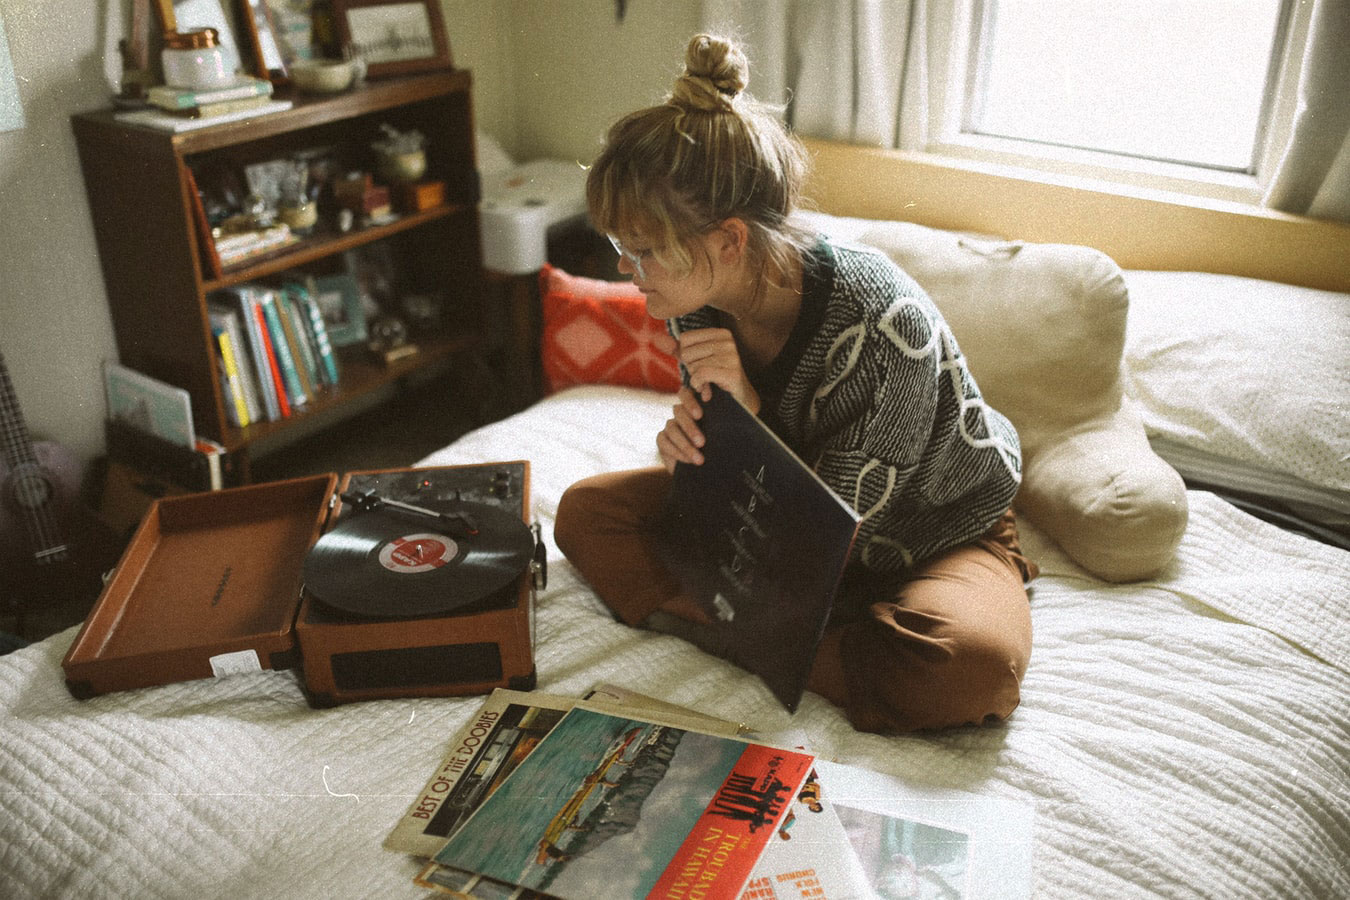 photo of a girl in her room listening to a record player | by aerosphotos @ unsplash.com